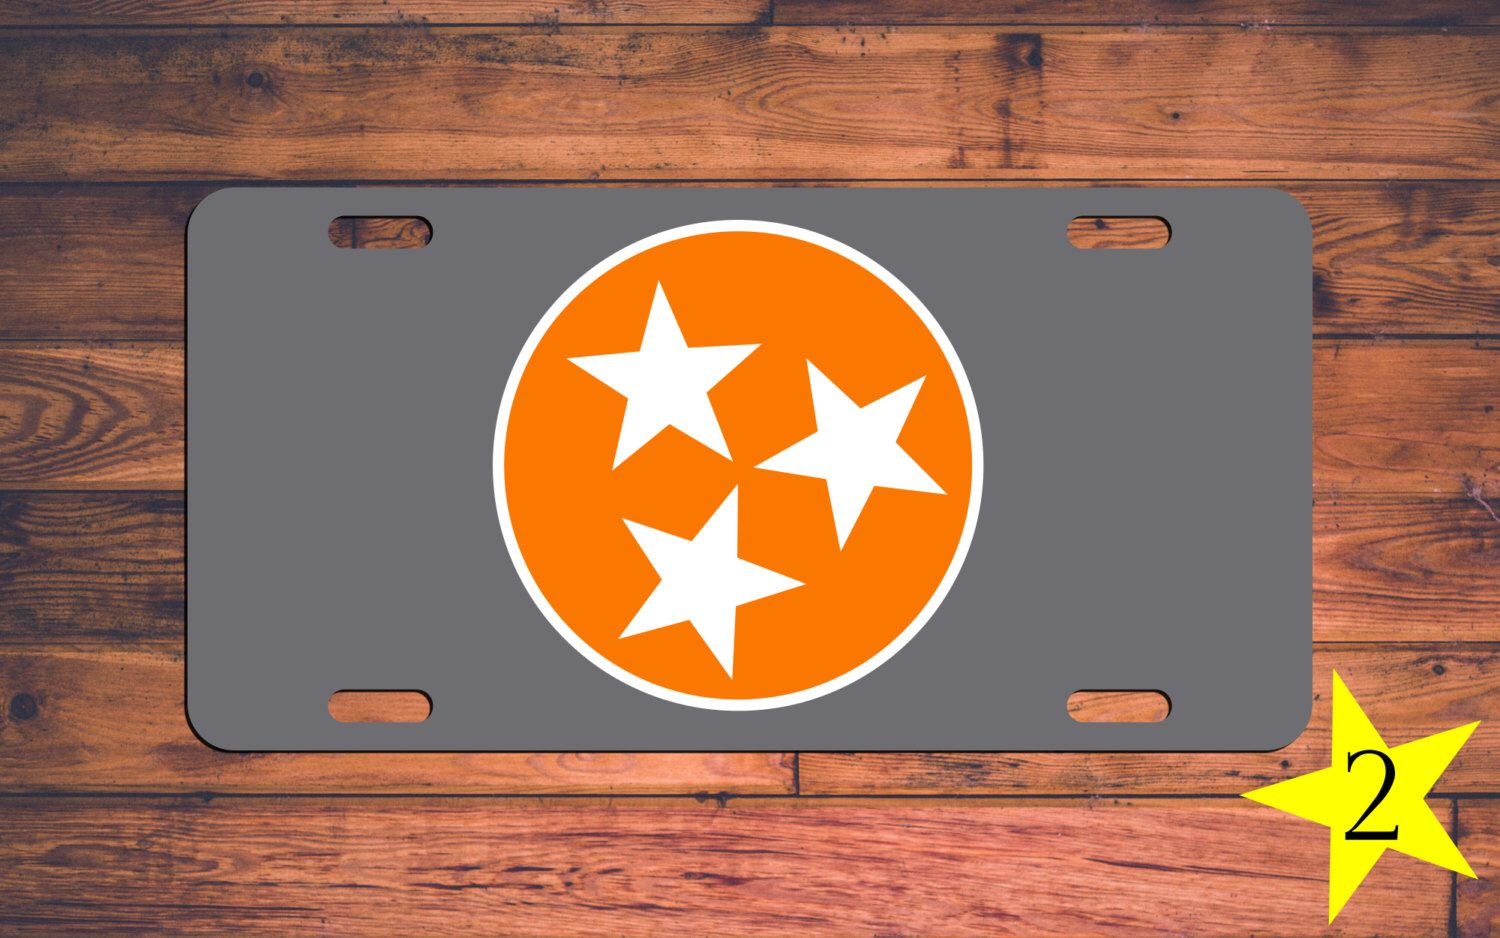 Tennessee VOLS Vanity License Plate TN Volunteers Car Tag 3 Stars ...